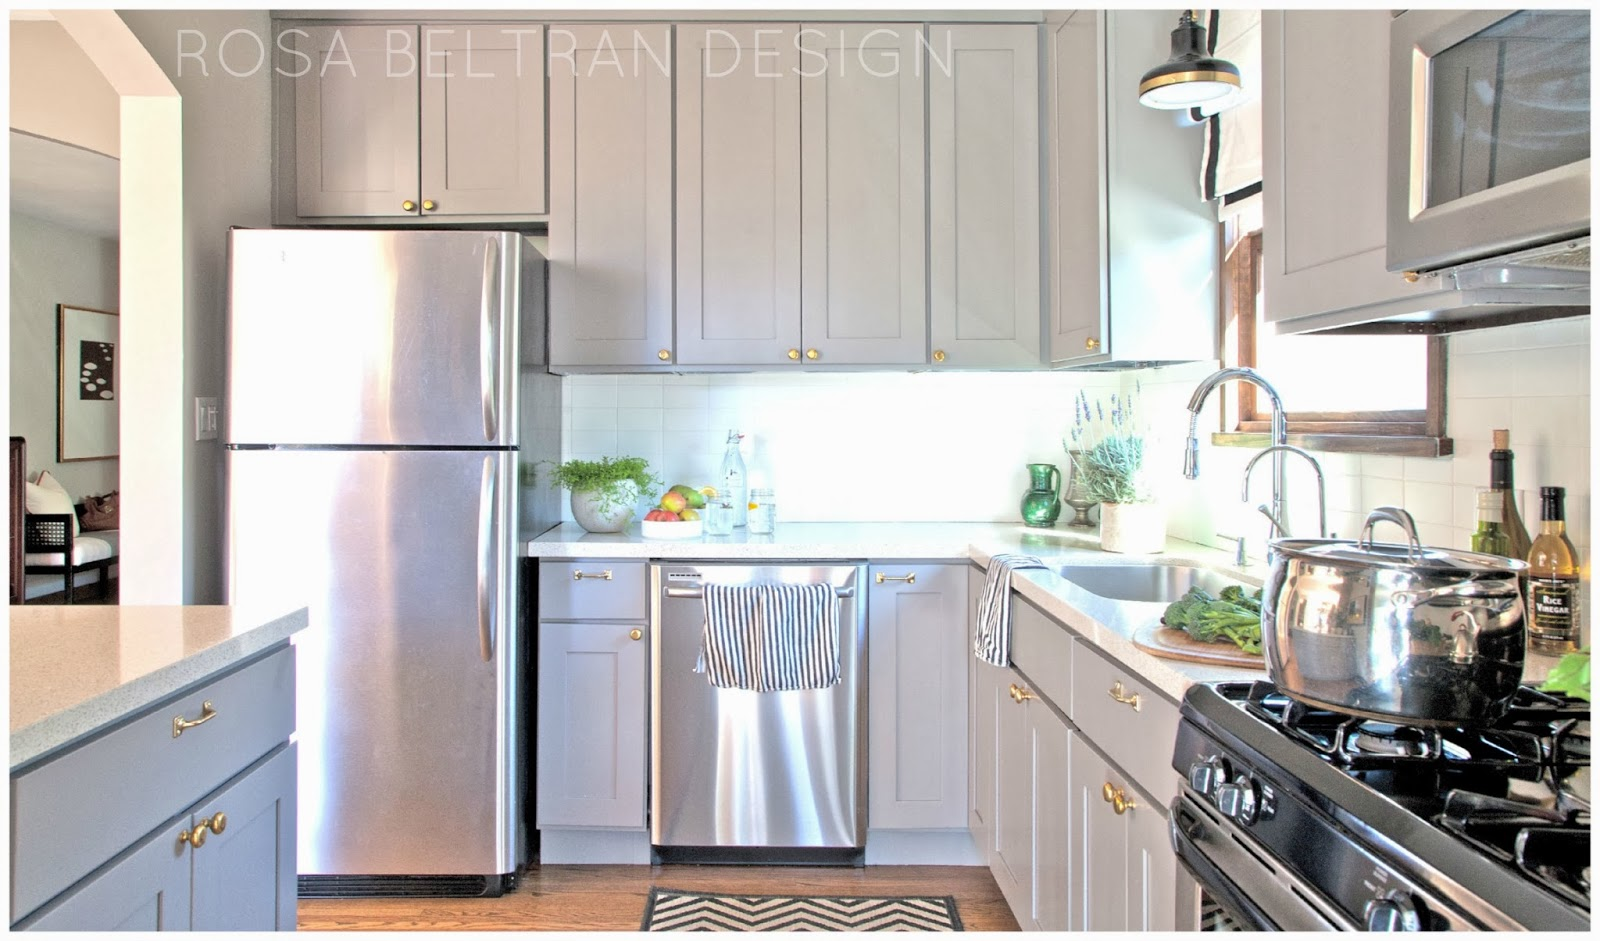 Rosa Beltran Design Diy Painted Kitchen Cabinets: pictures of painted cabinets